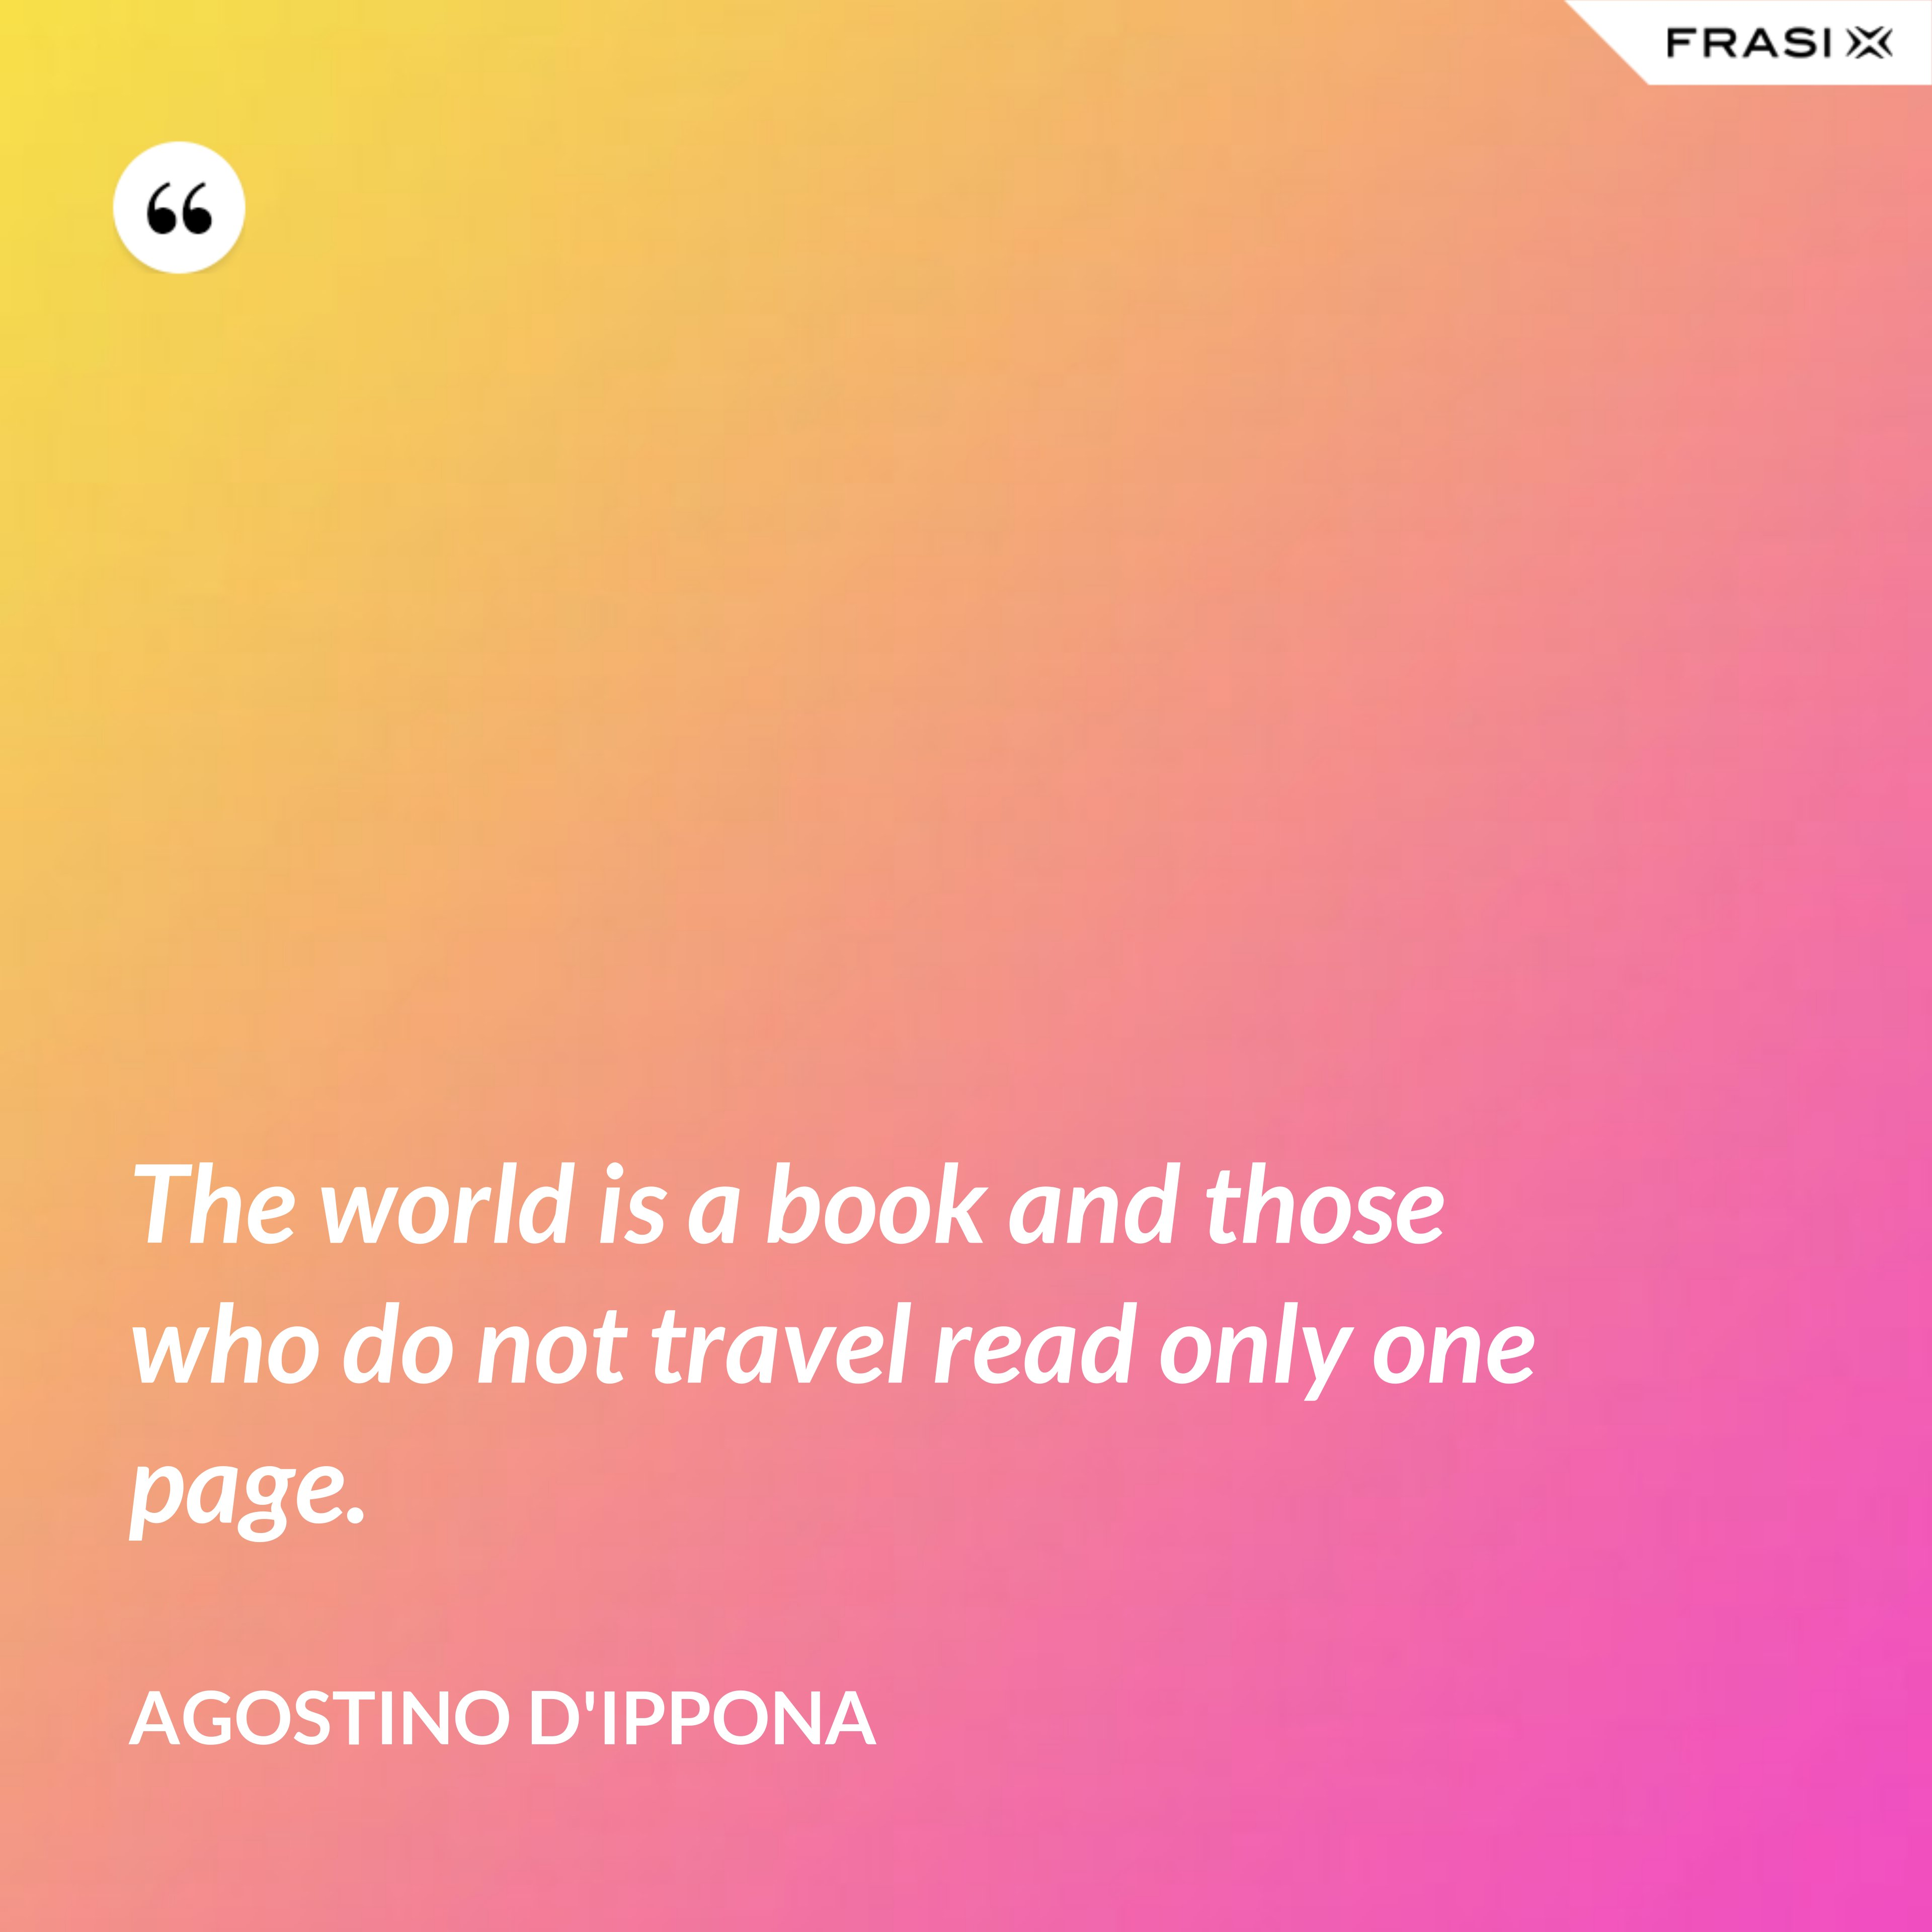 The world is a book and those who do not travel read only one page. - Agostino d'Ippona